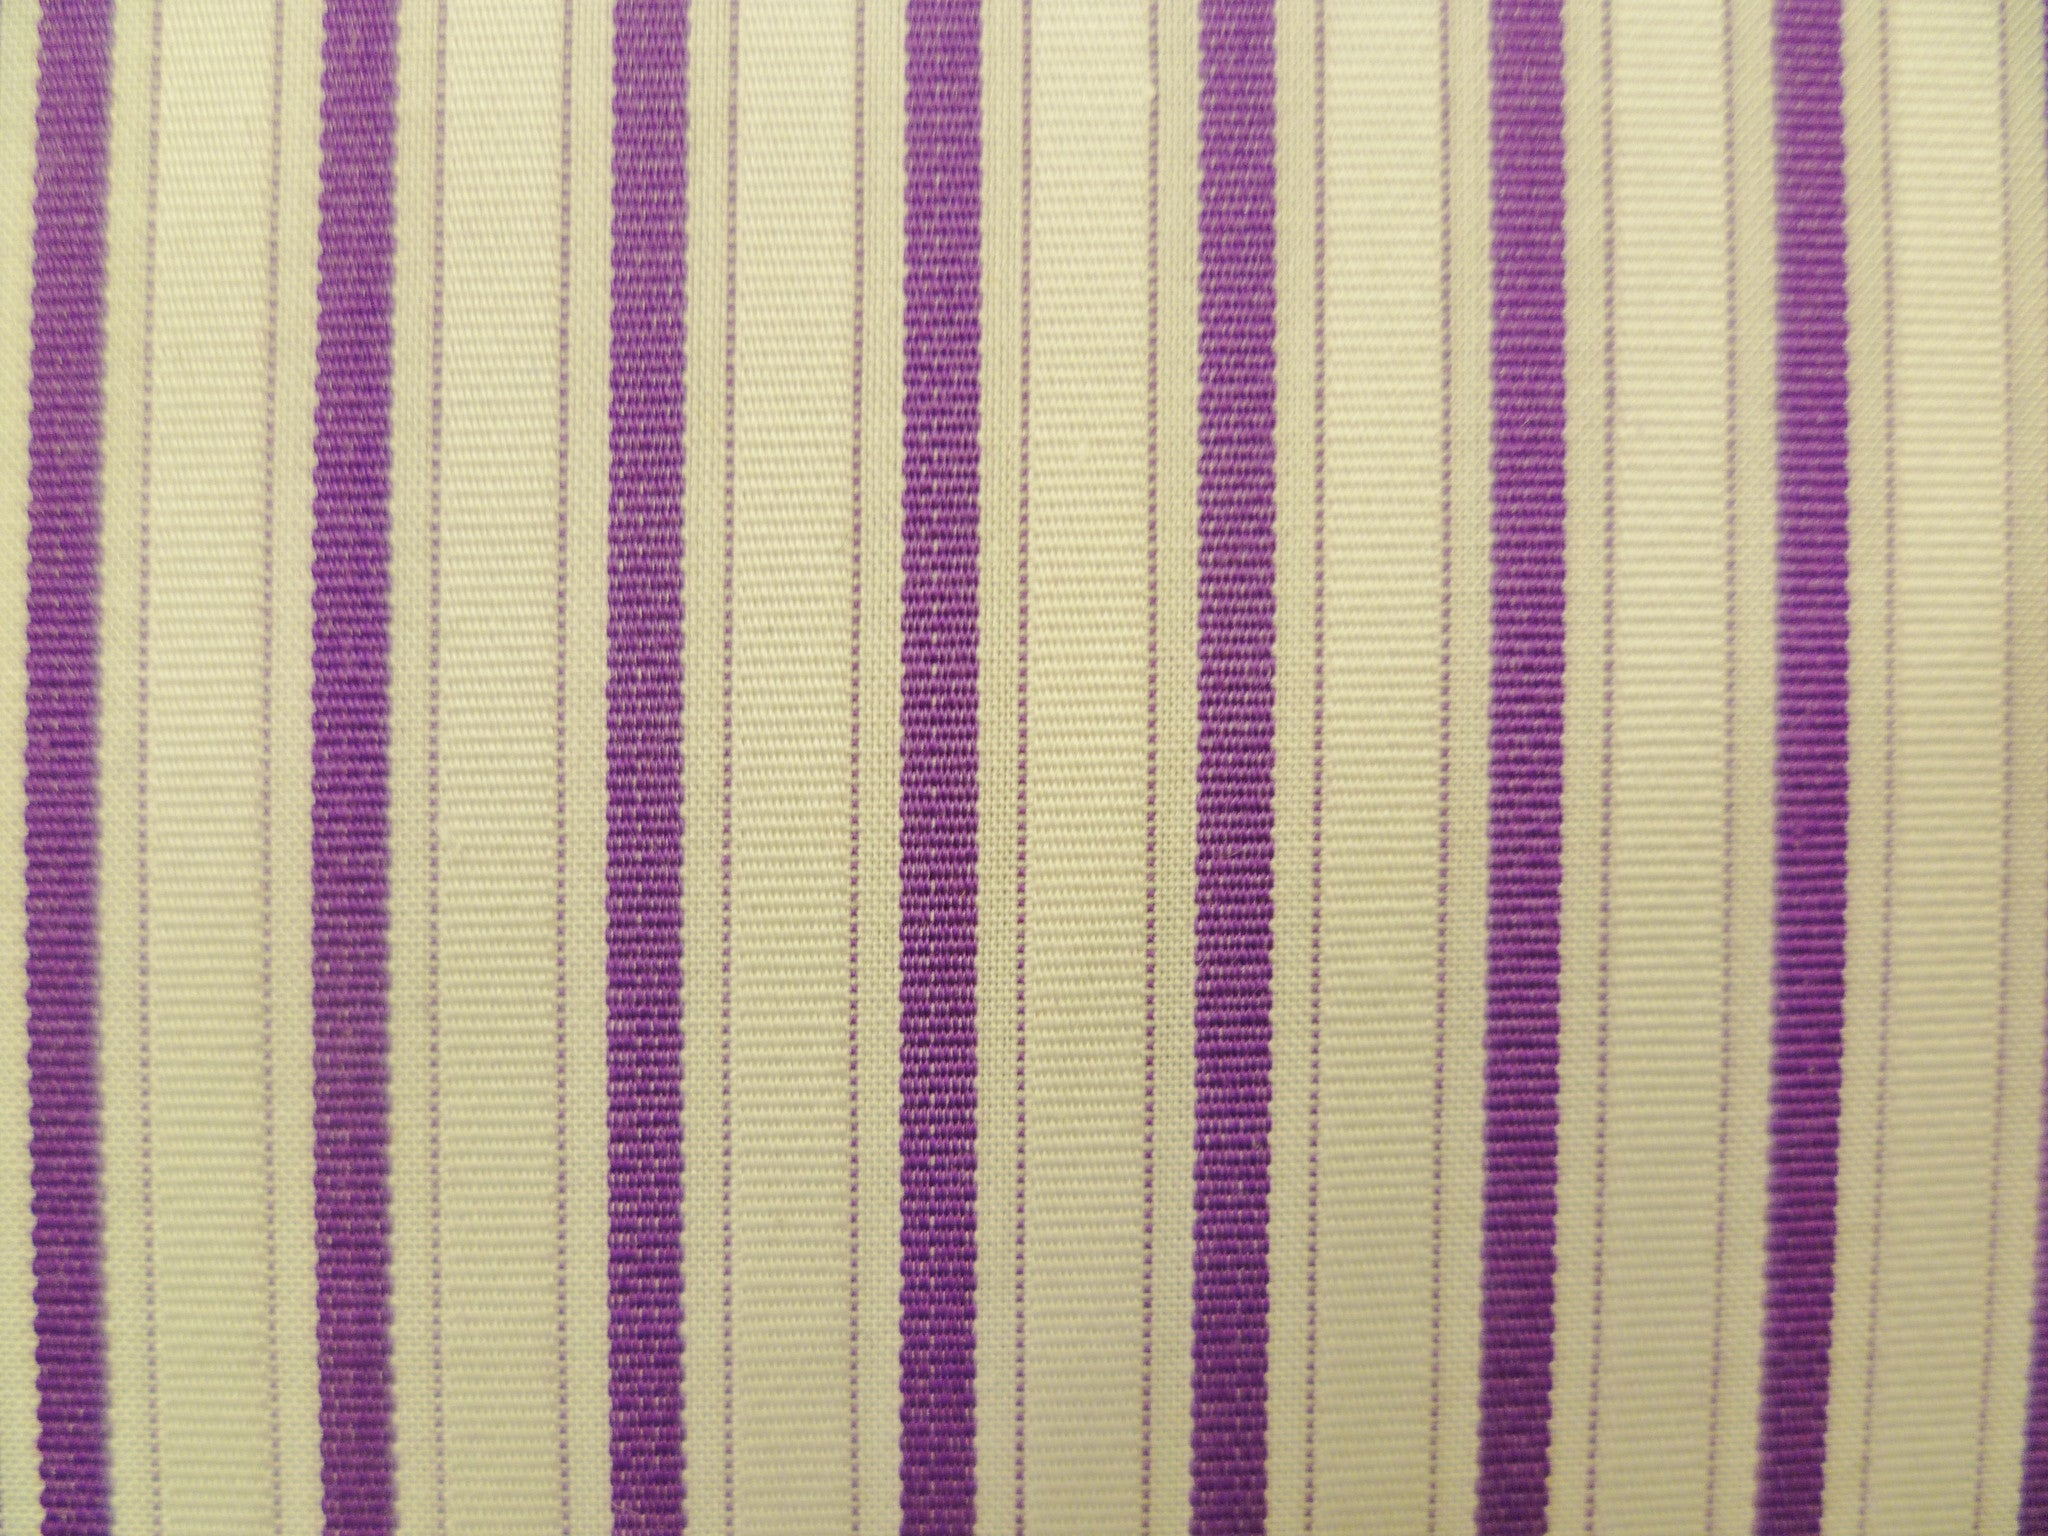 Royal Purple and White Textured Striped Cotton